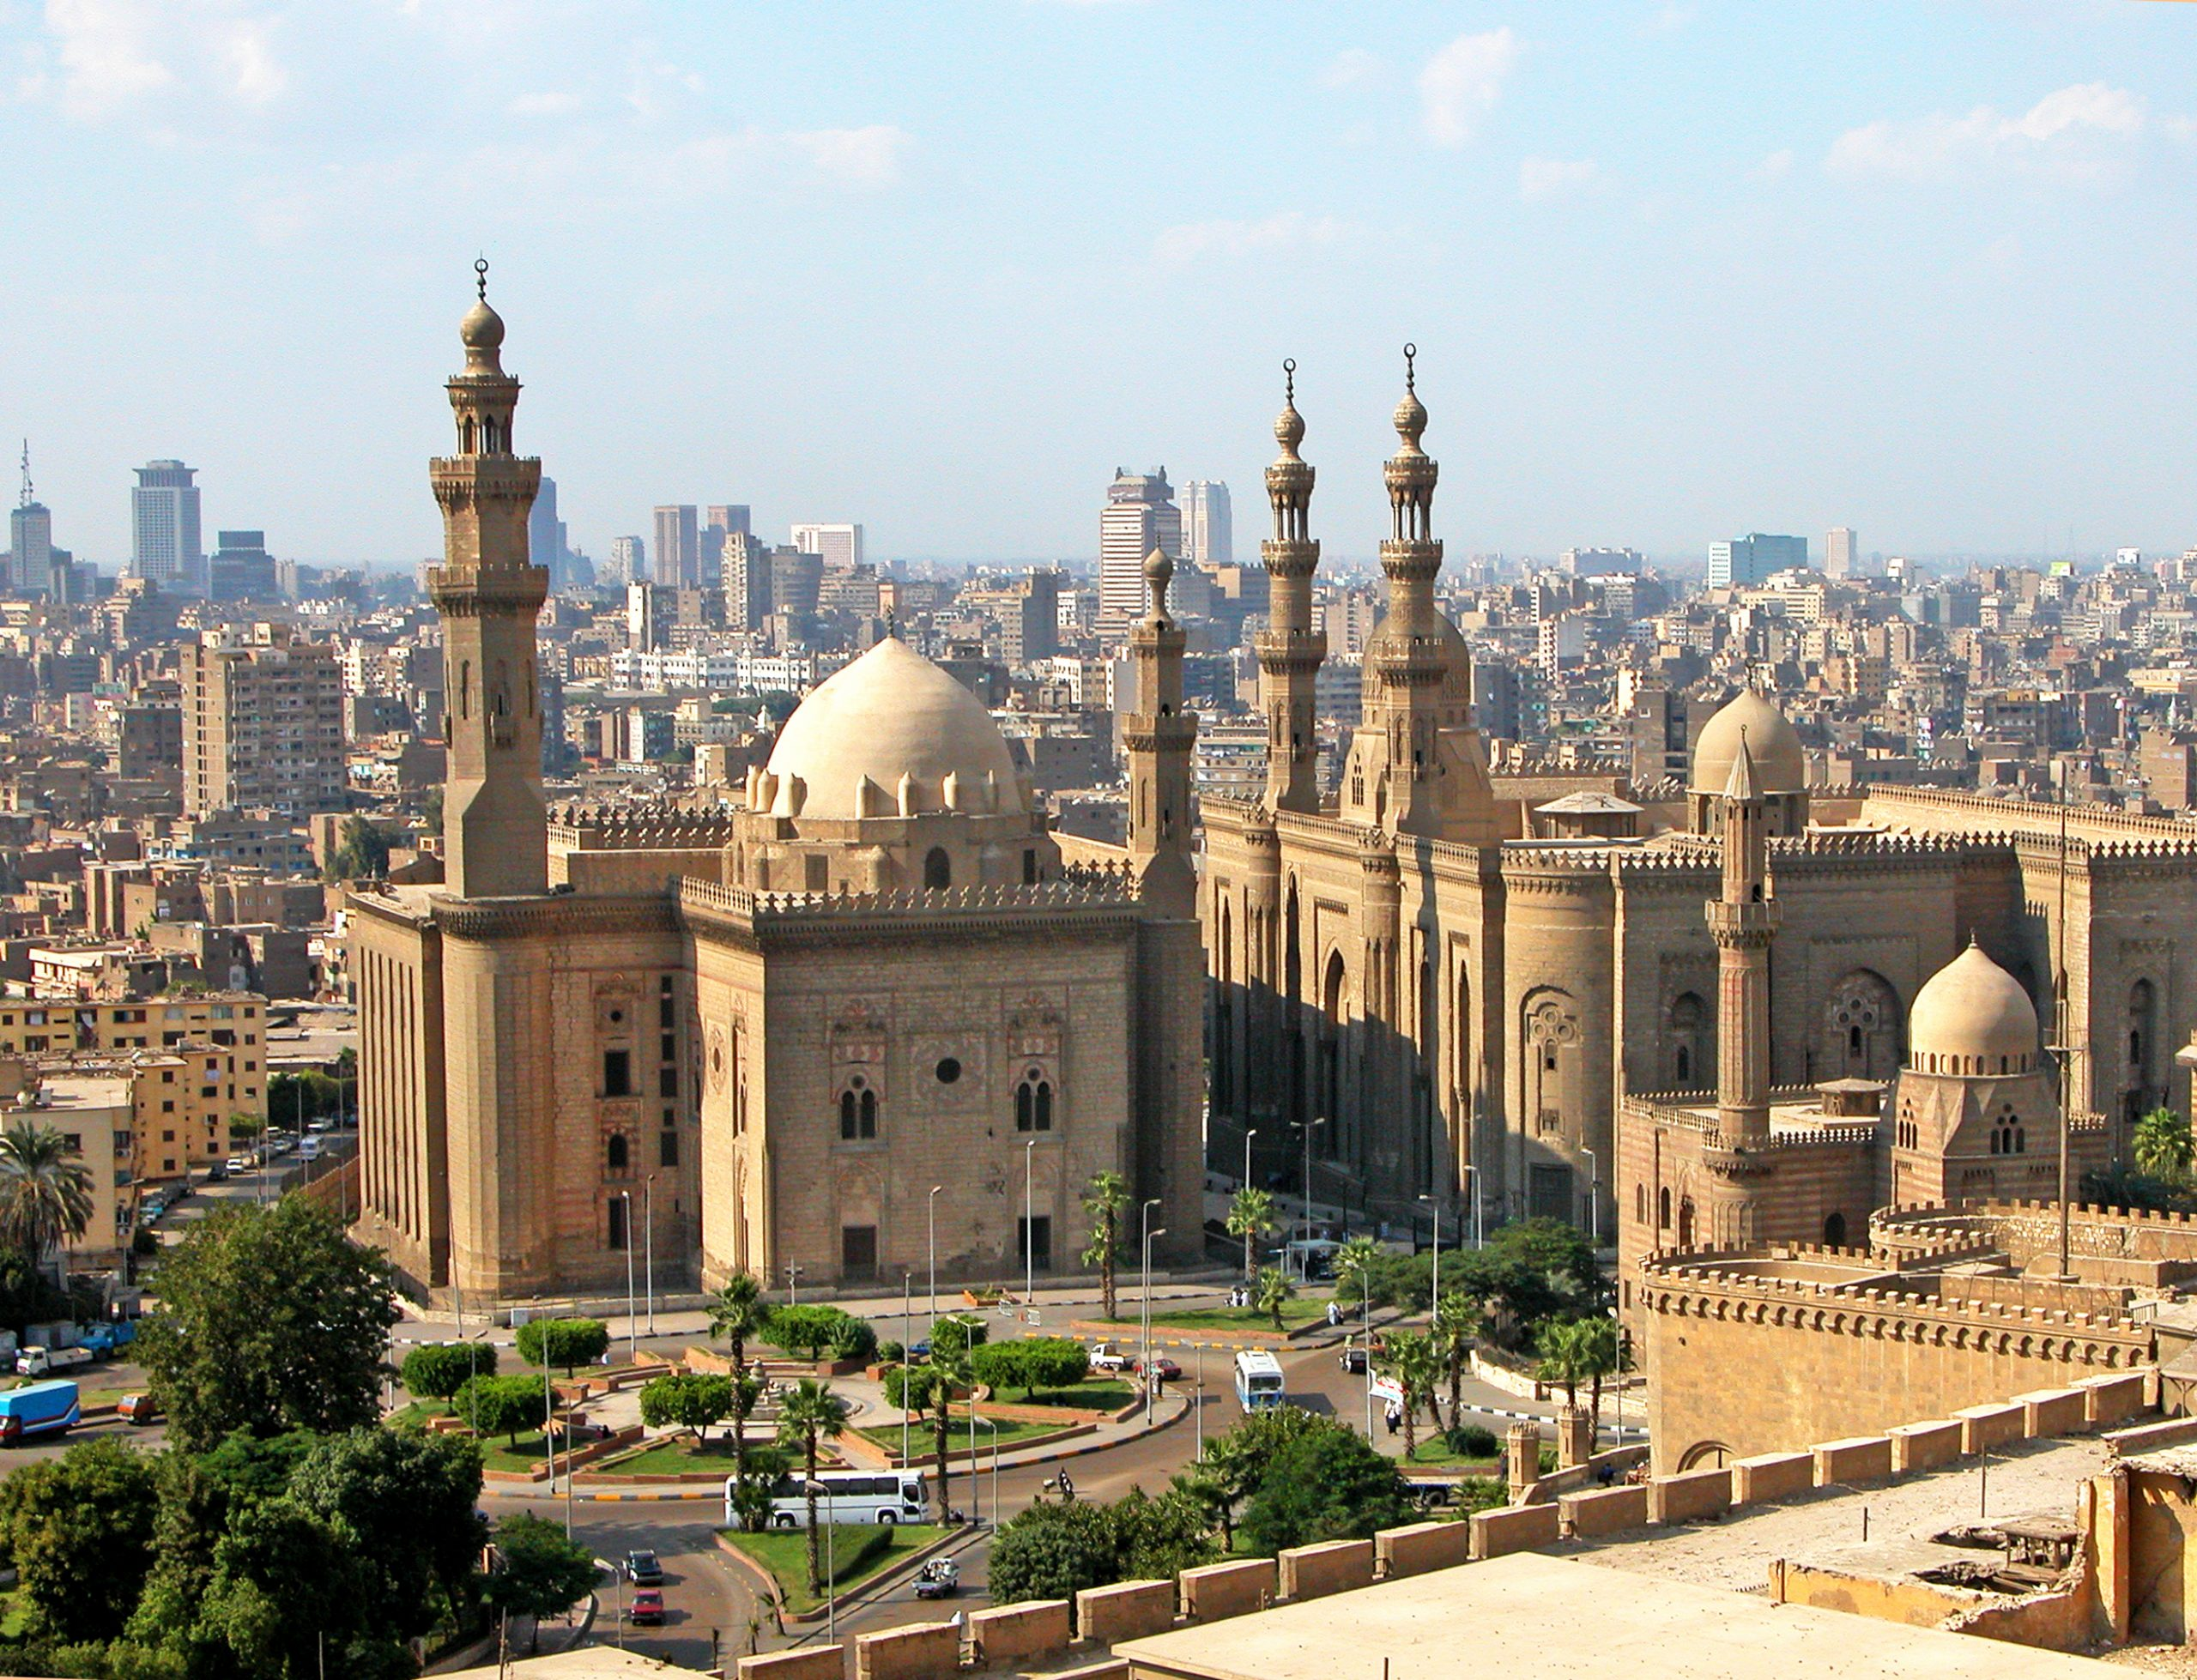 View of the Mosques of Sultan Hassan and Al-Rifai in Cairo